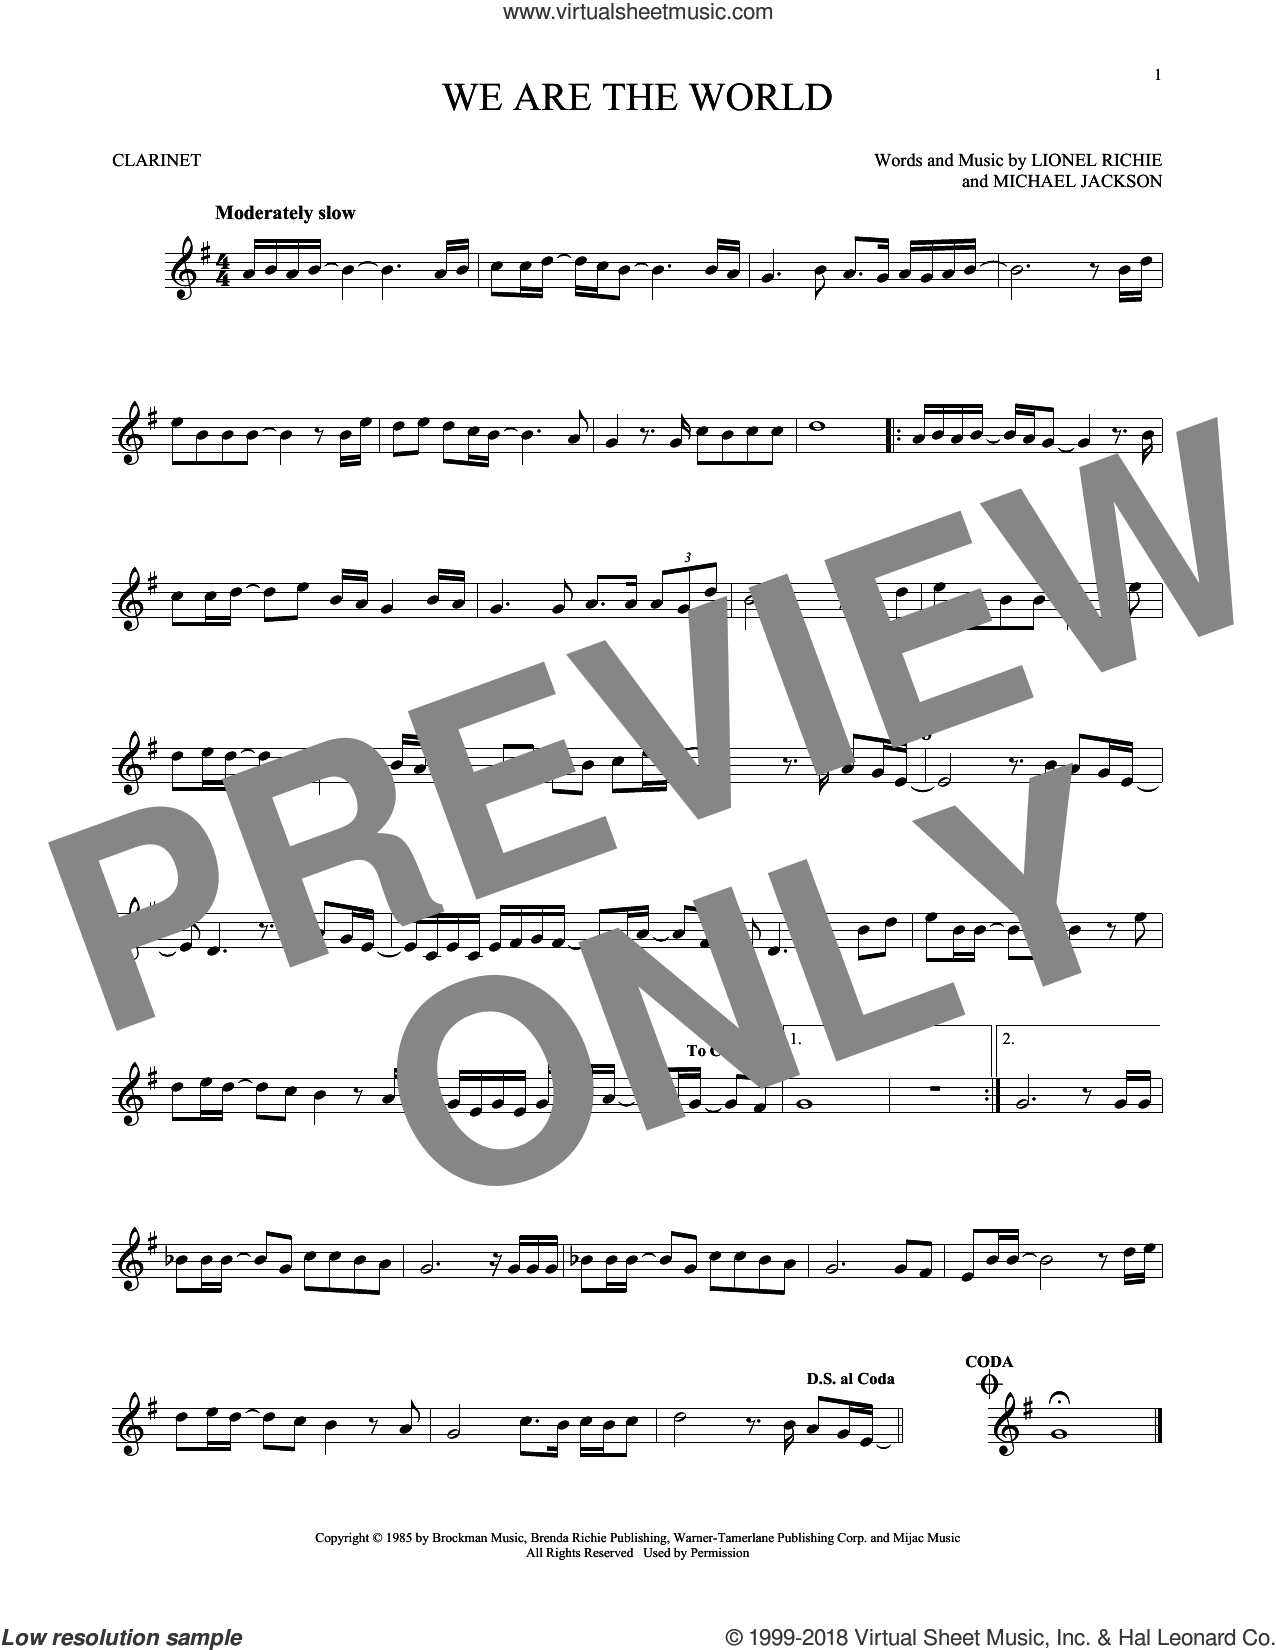 We Are The World sheet music for clarinet solo by Michael Jackson, USA For Africa, Lionel Richie and Lionel Richie & Michael Jackson, intermediate skill level